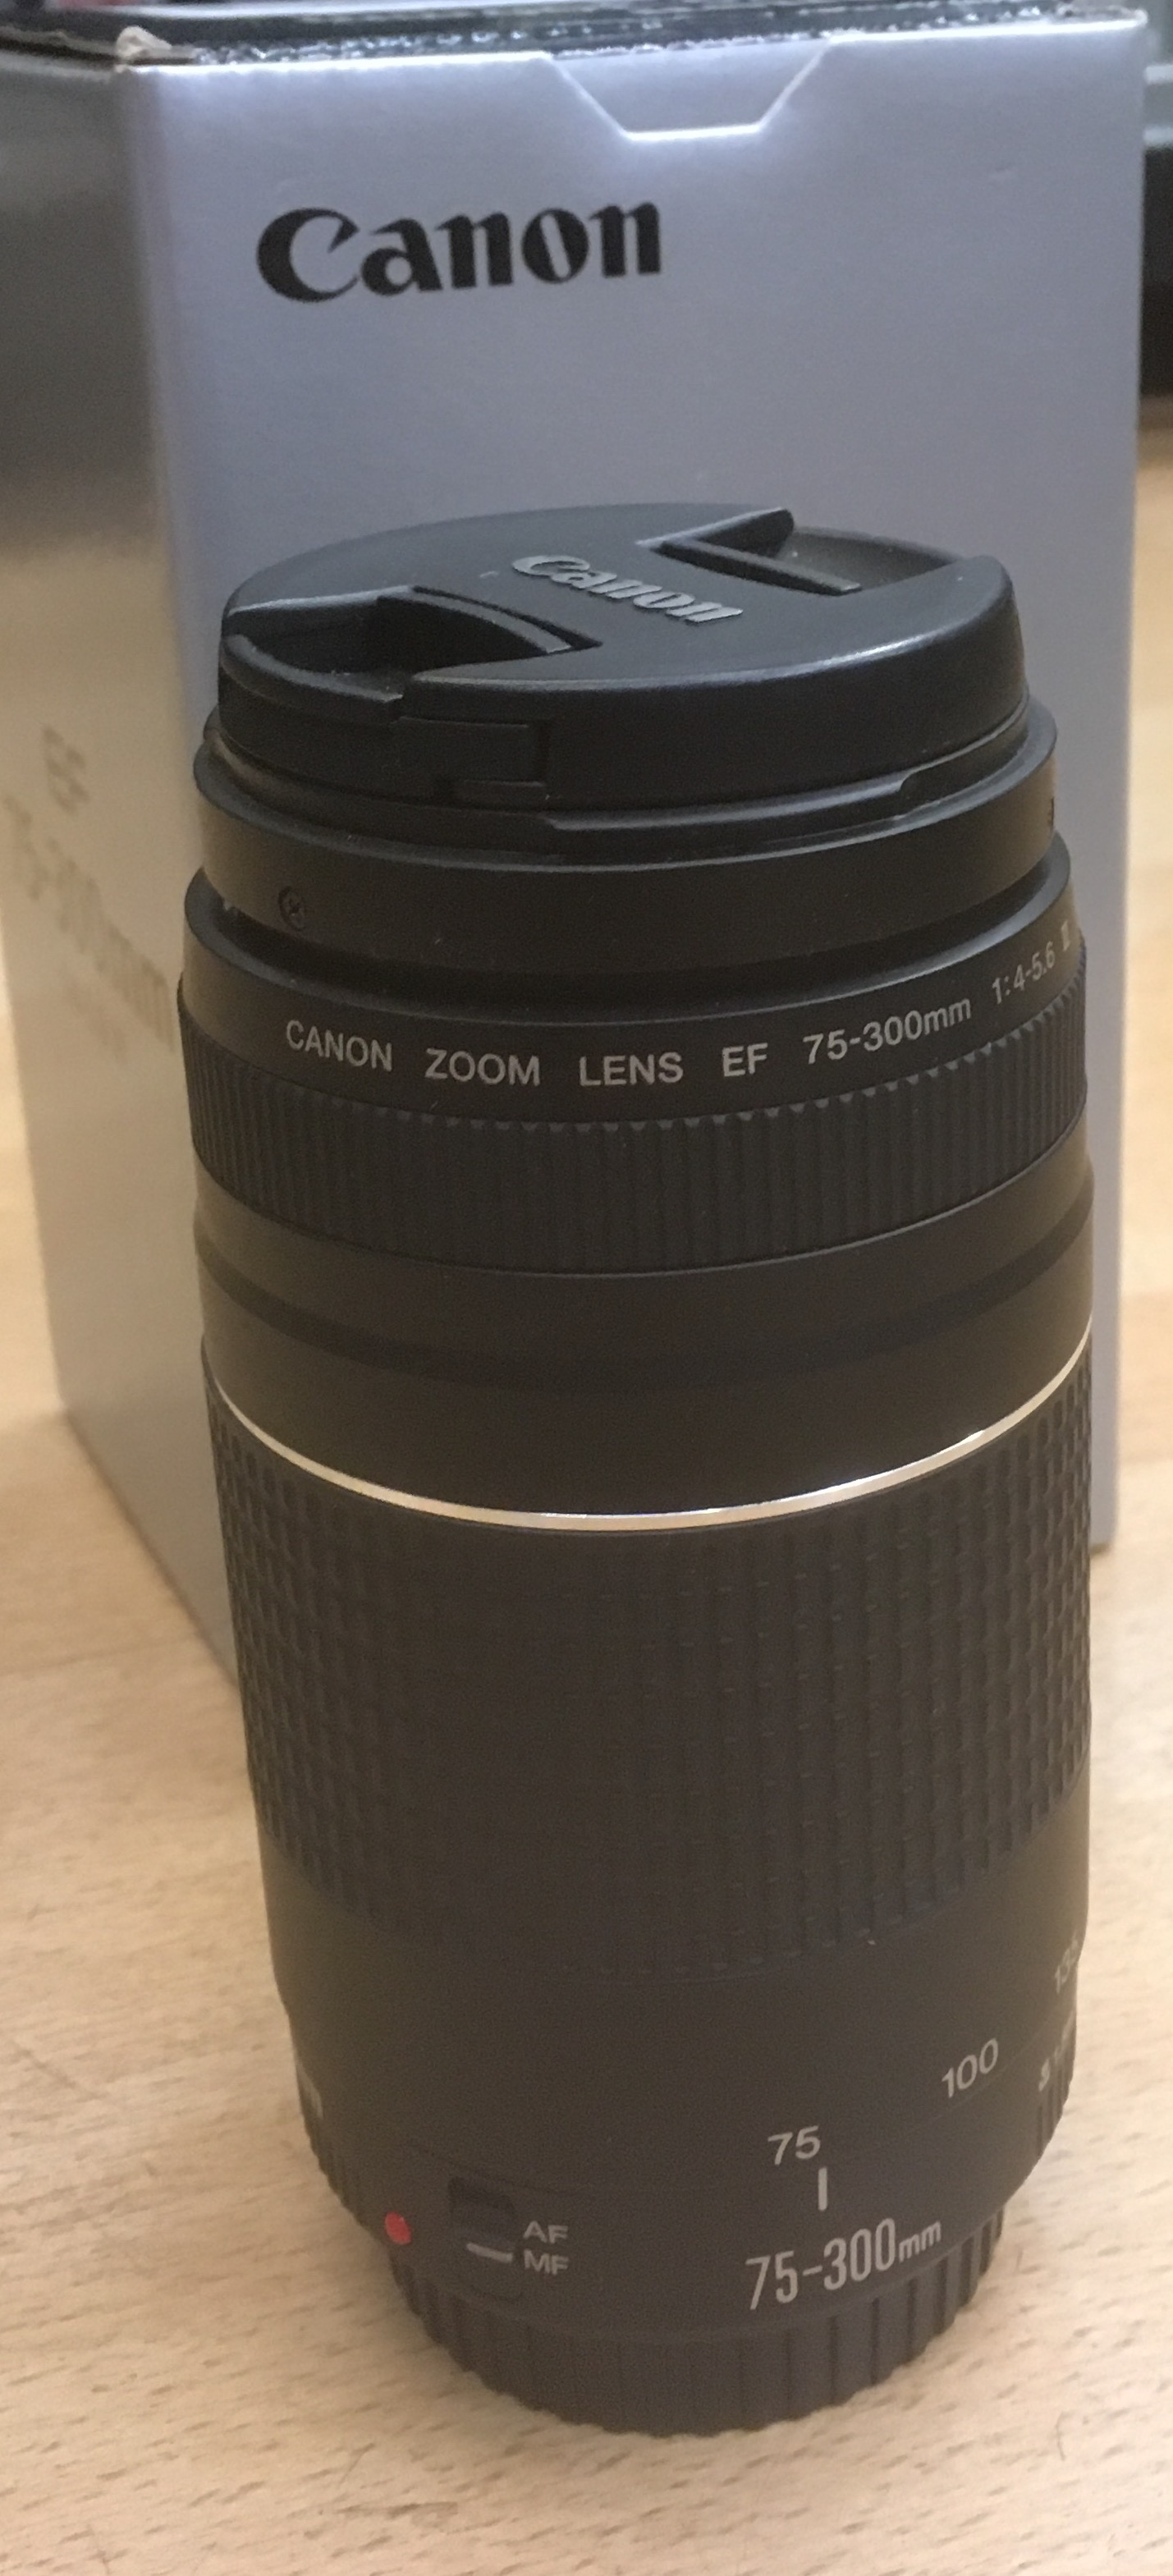 Picture of Canon EF75-300mm F4-5.6 III